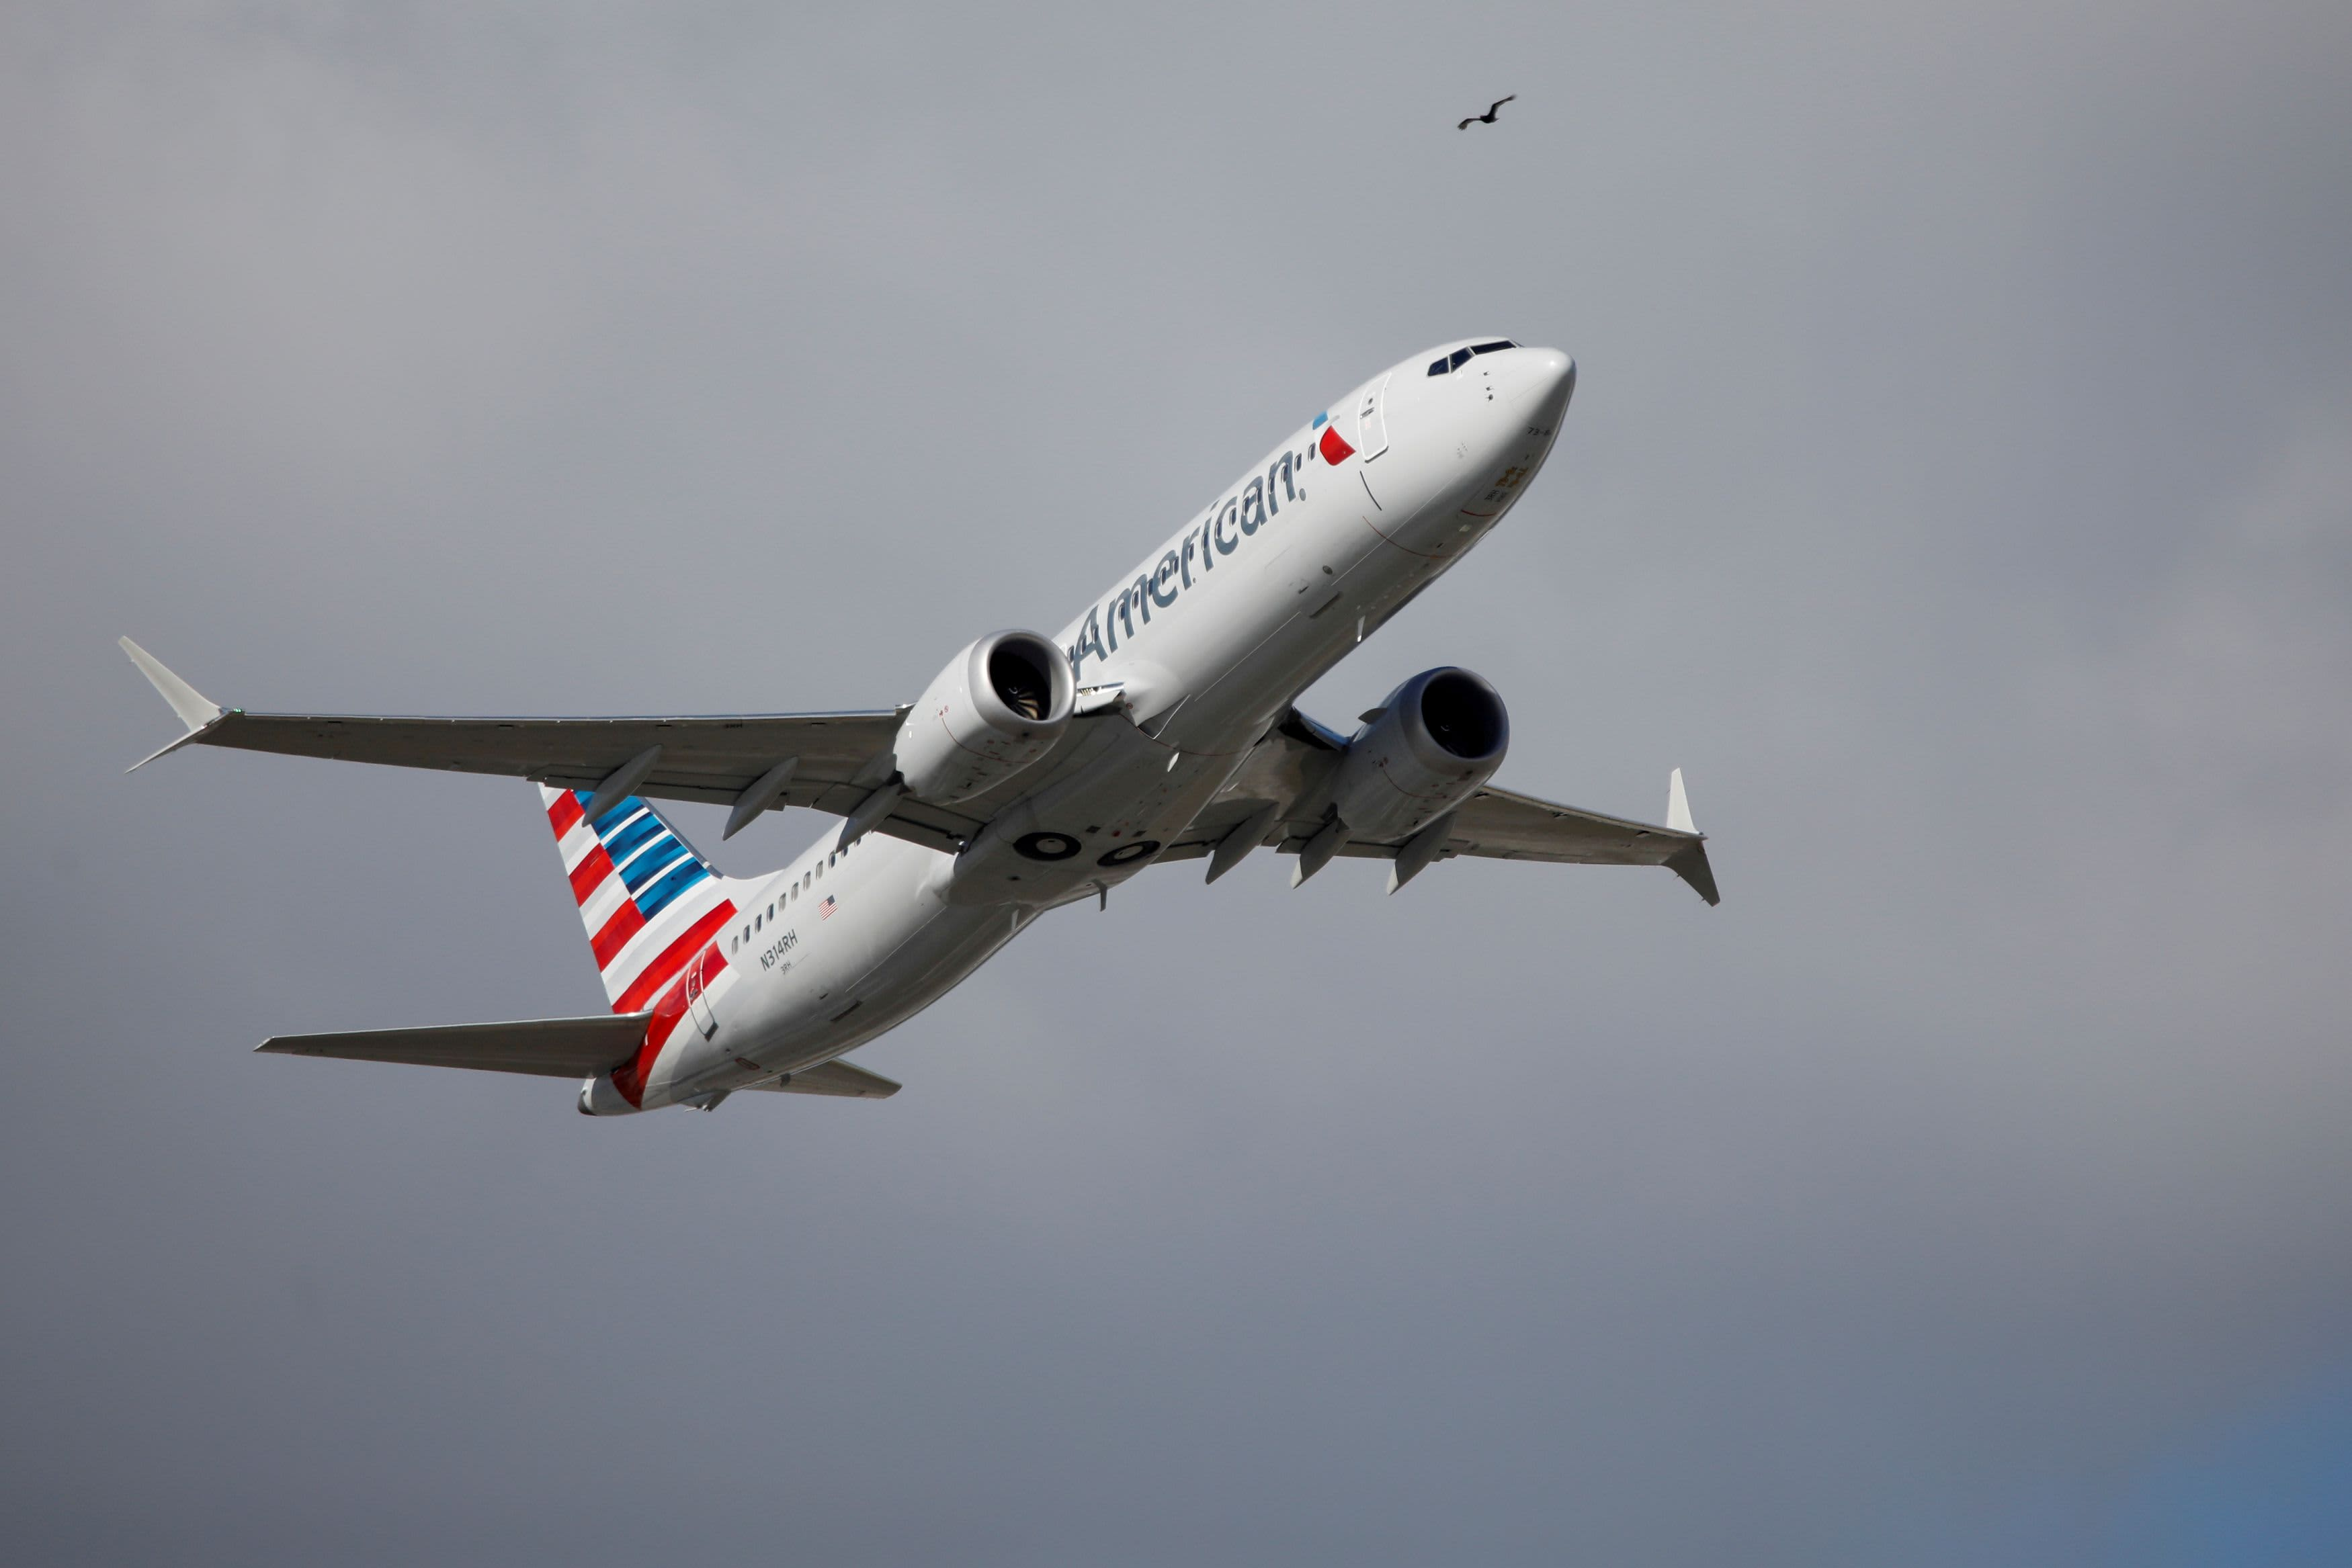 American Airlines, Teradata, Equifax and more